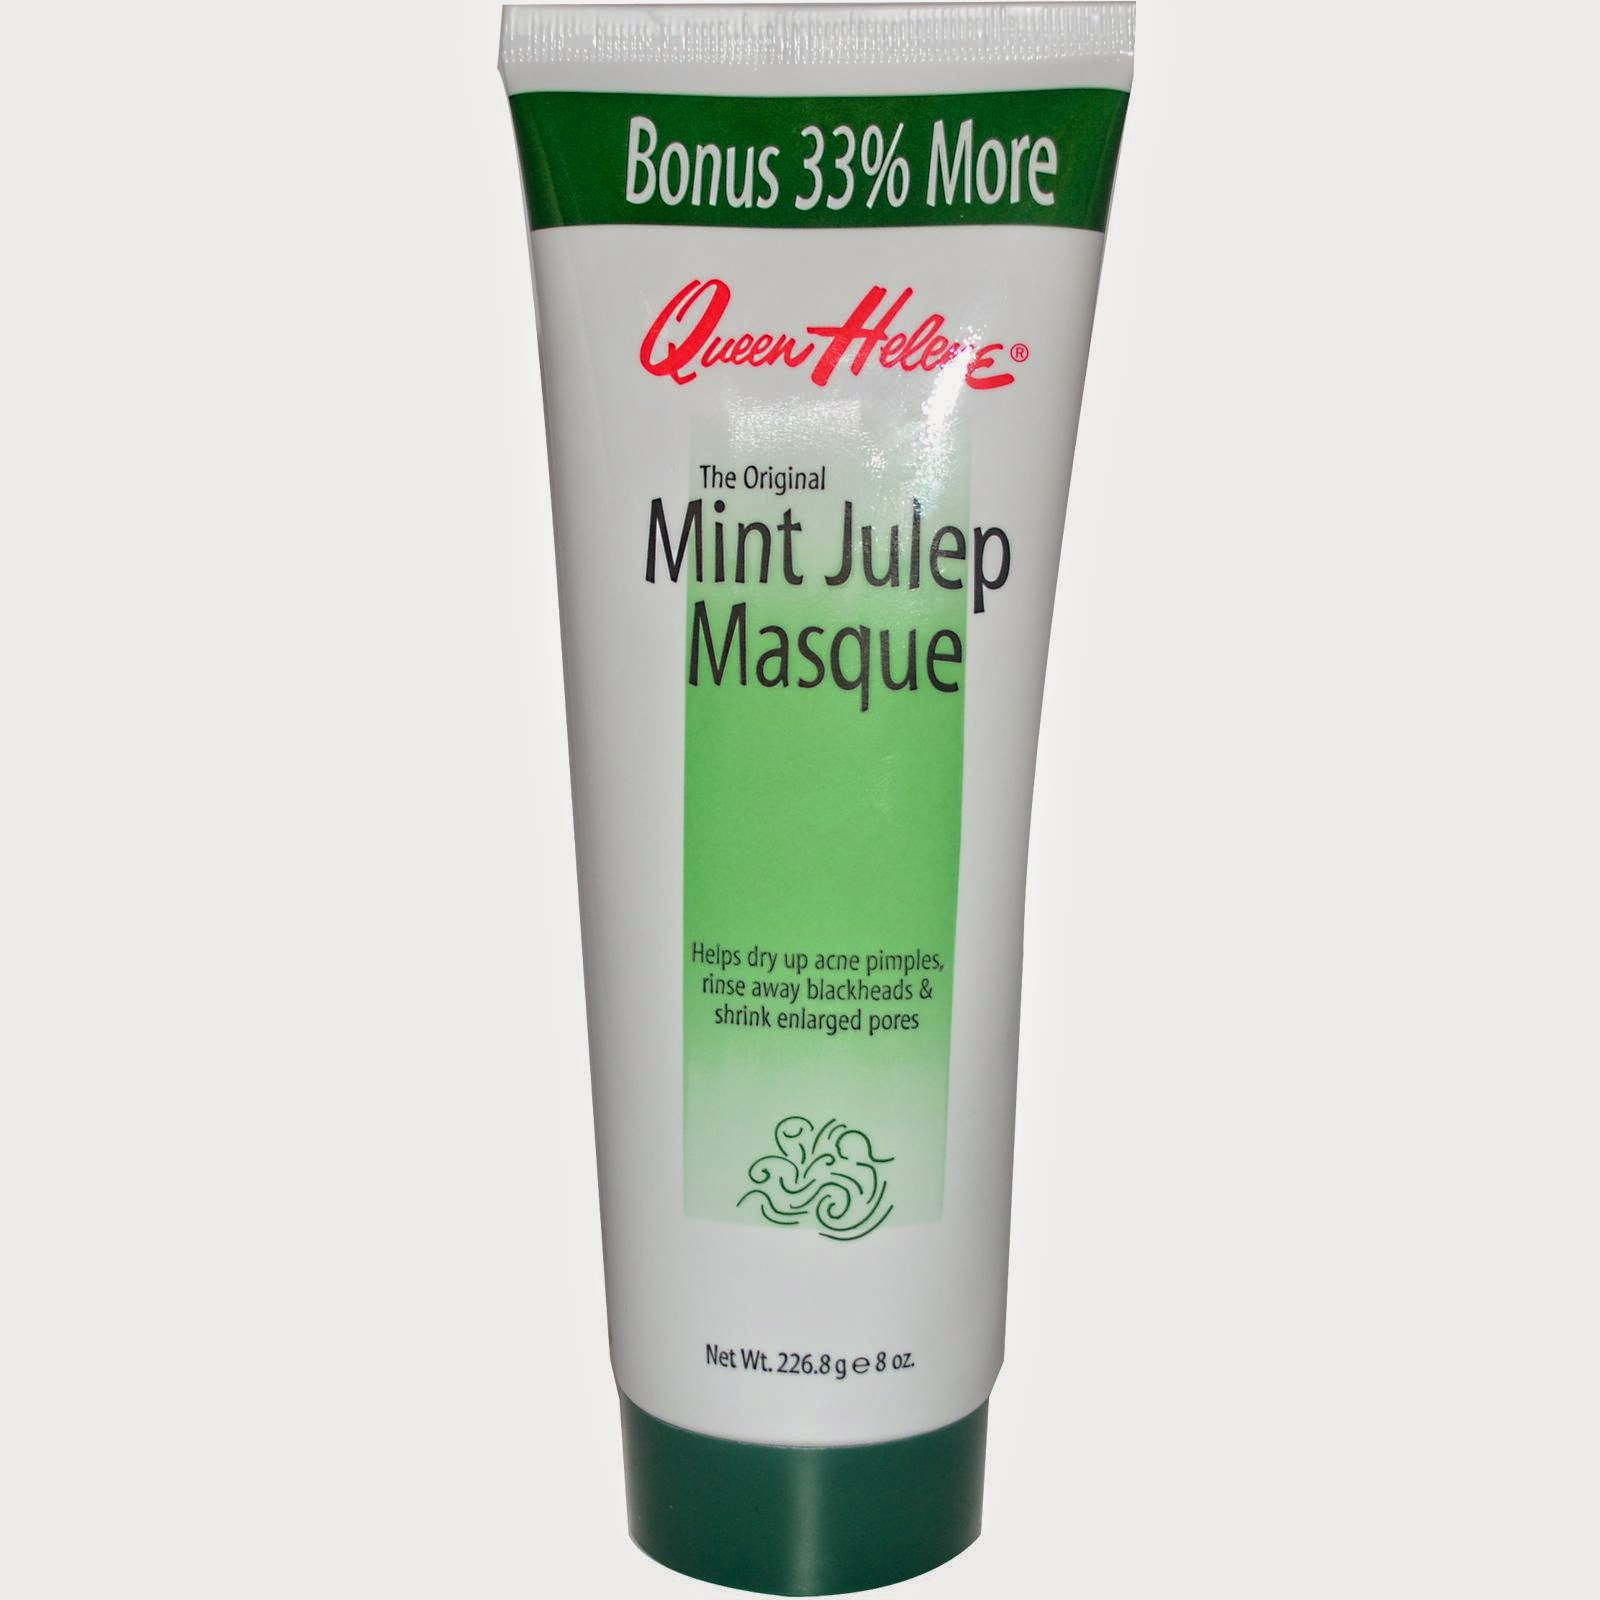 ♥ Ready Stock ♥ Queen Helene Mint Julep Masque 226.8g